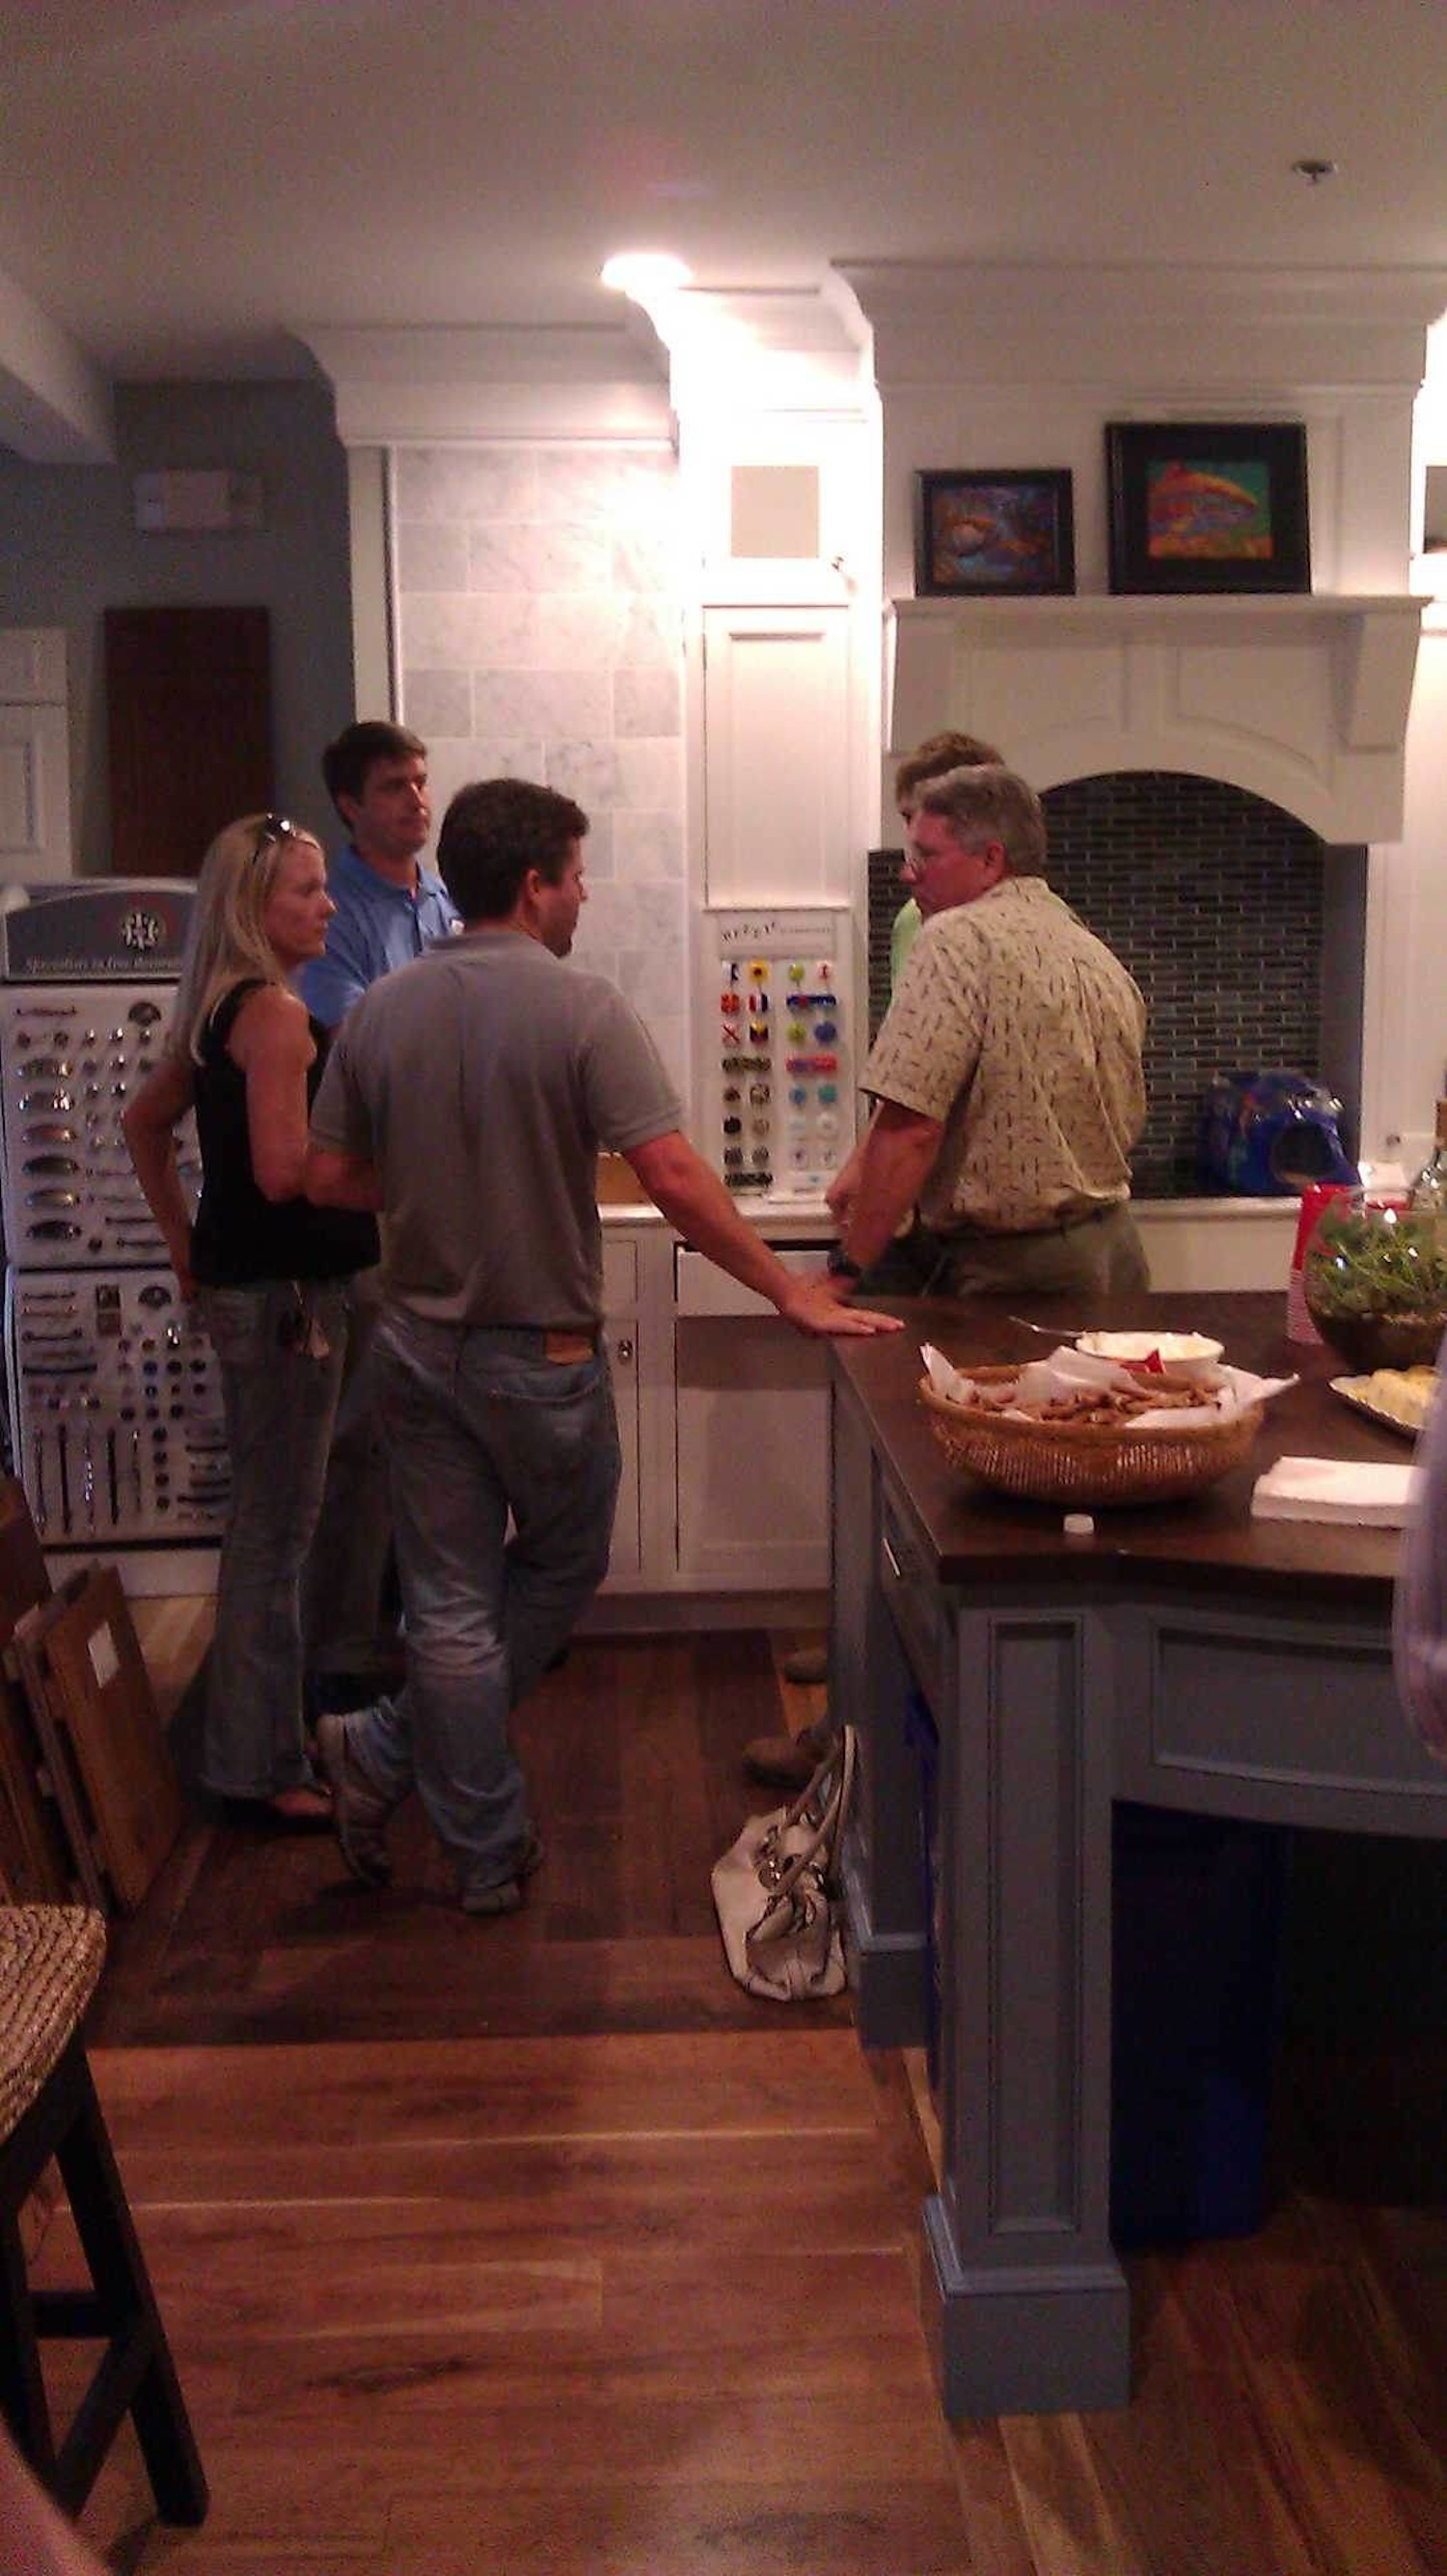 Island Interiors  open house and fundraising event.